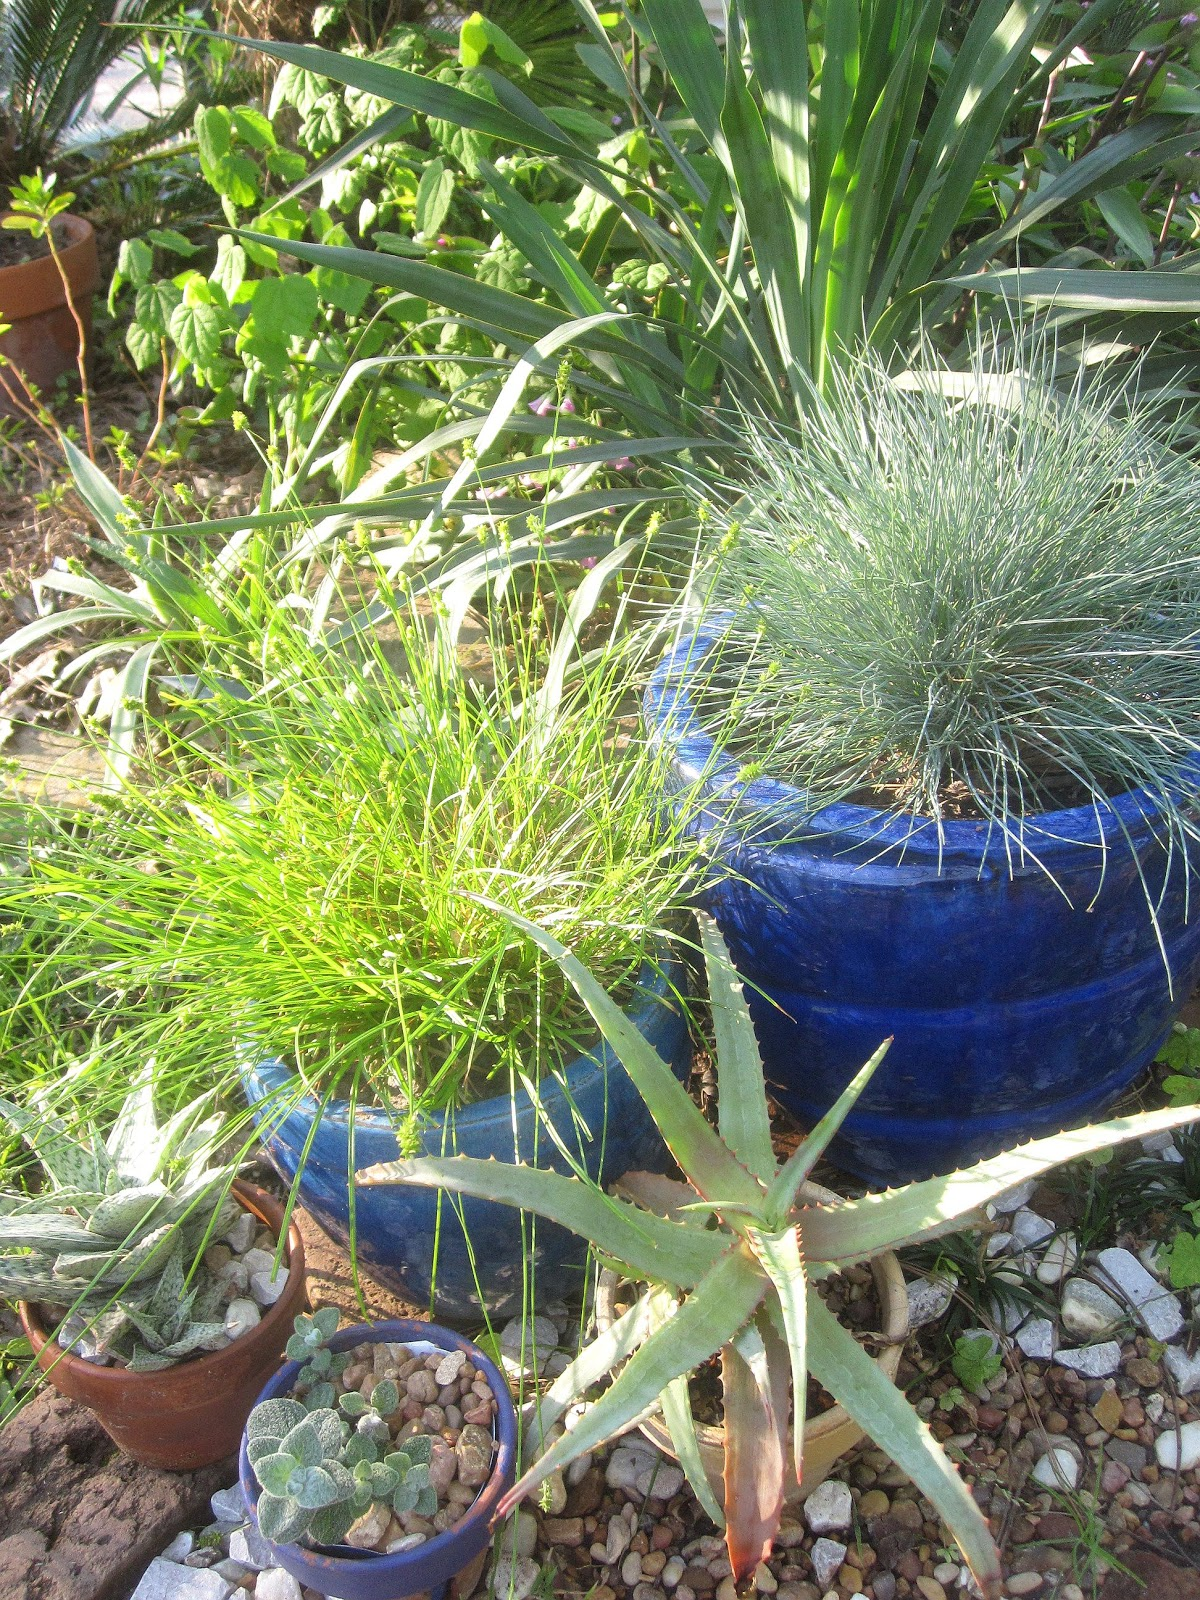 10 Garden Elements With Big Impact. blue pottery, grasses and cactus, container gardening